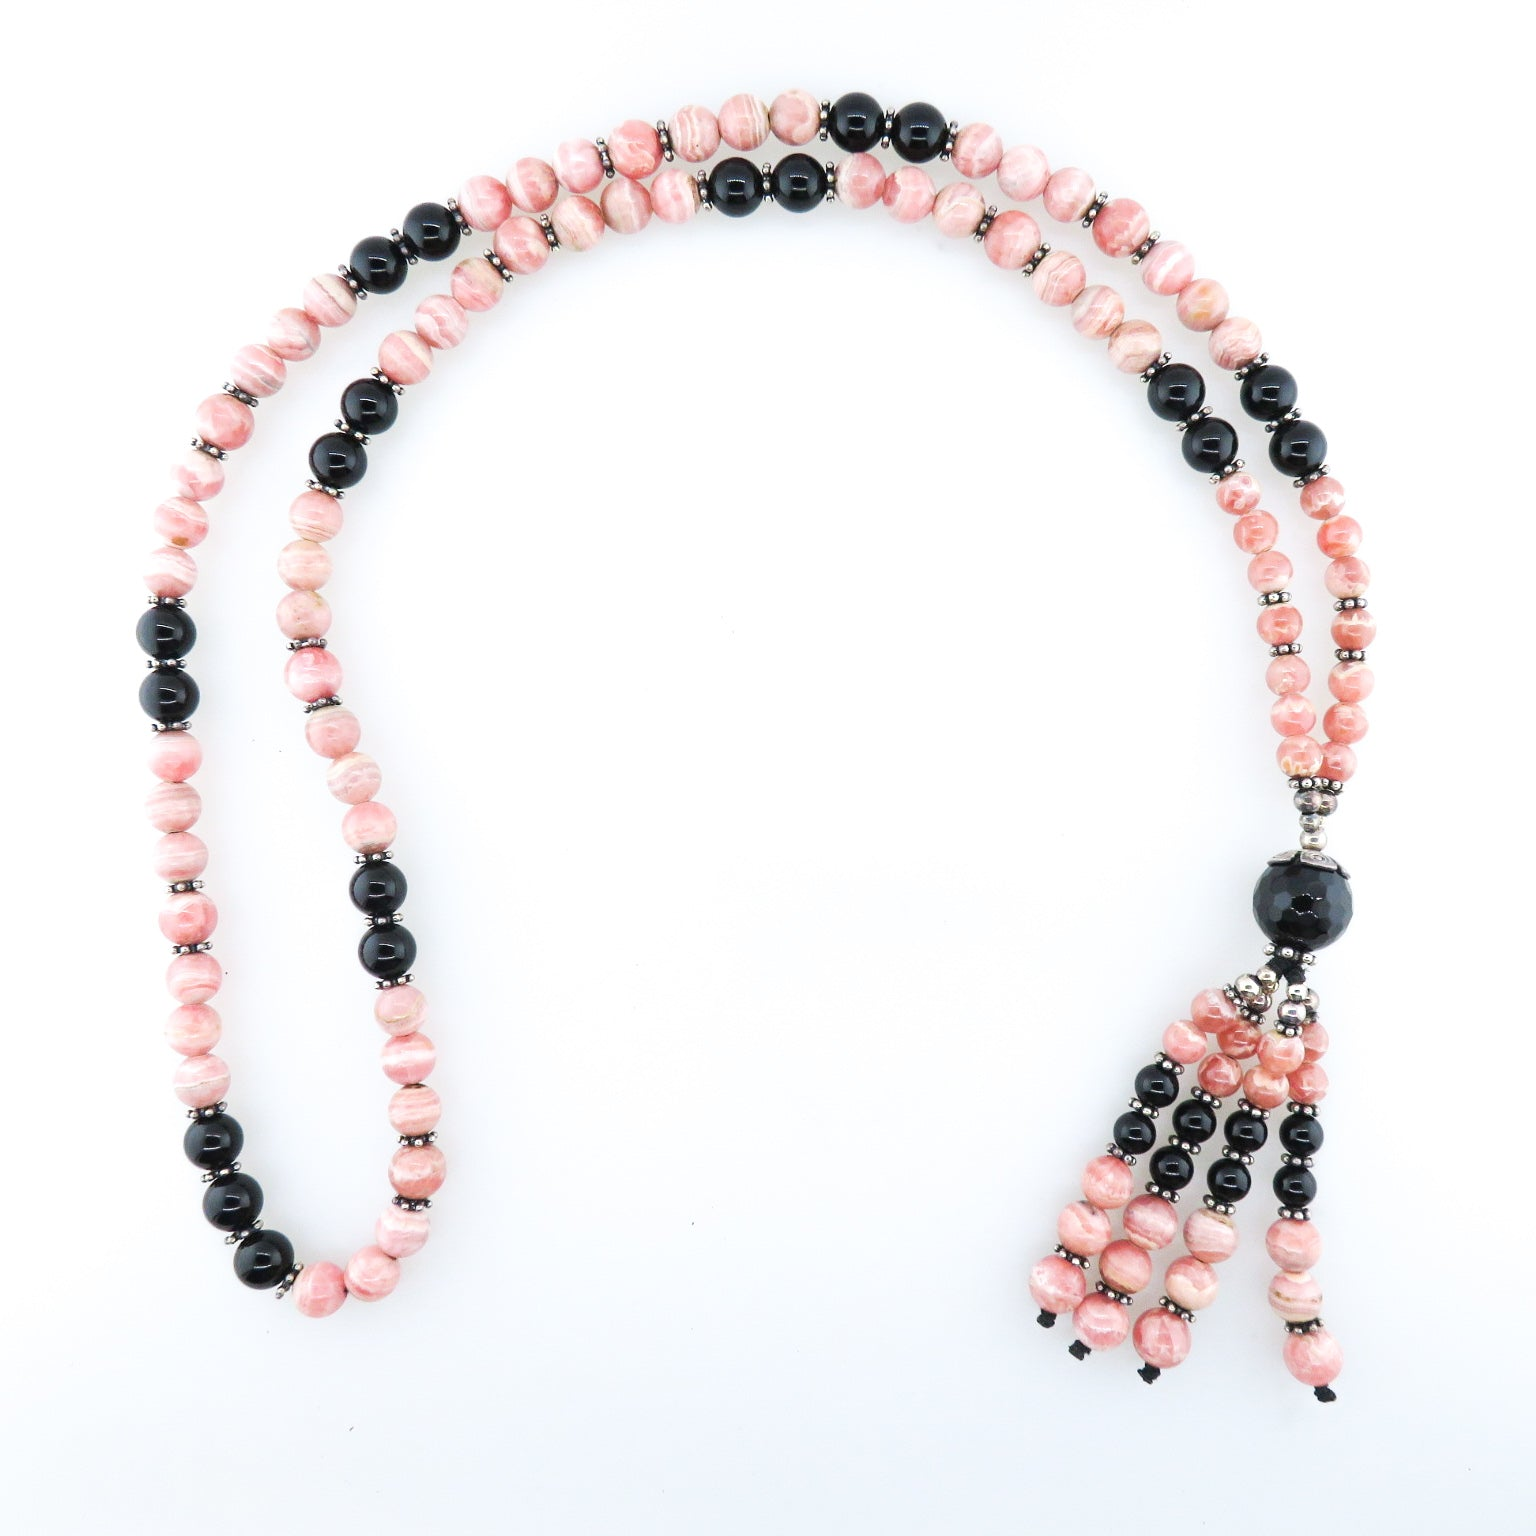 Rhodochrosite Bead Necklace with Black Onyx and Silver Beads